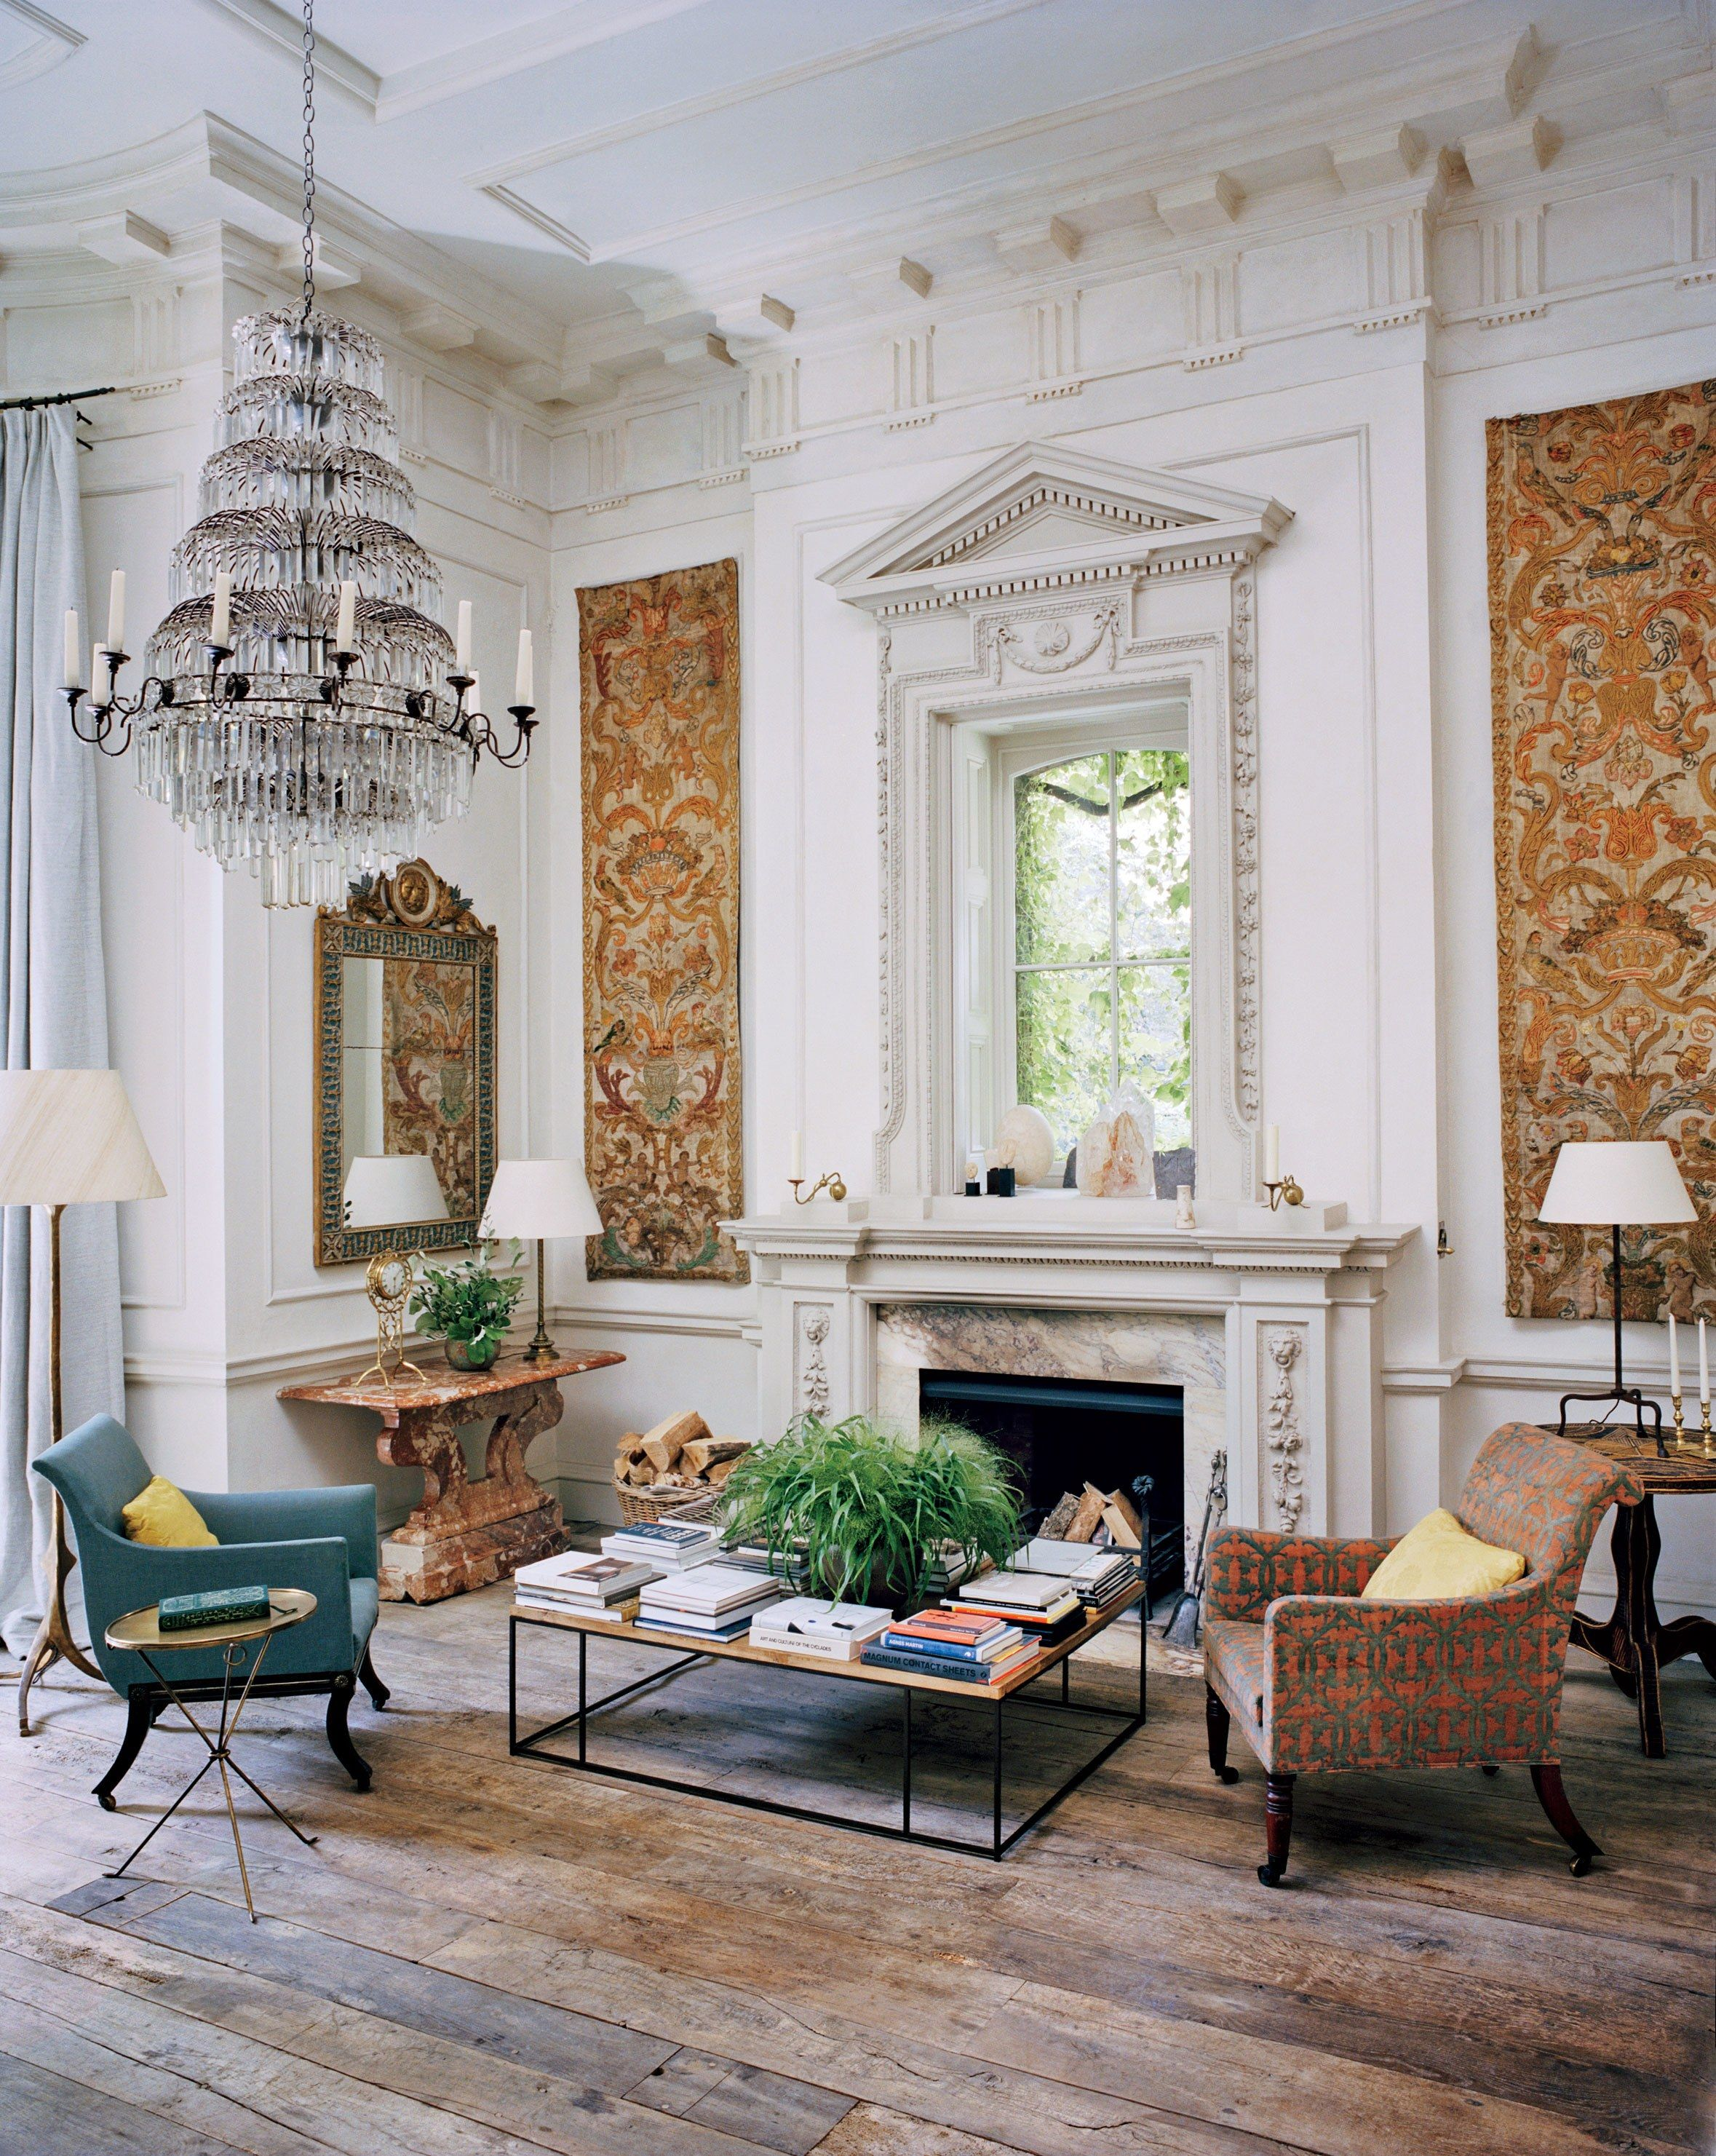 Inside Interior Designer Rose Uniacke S London Home Interior